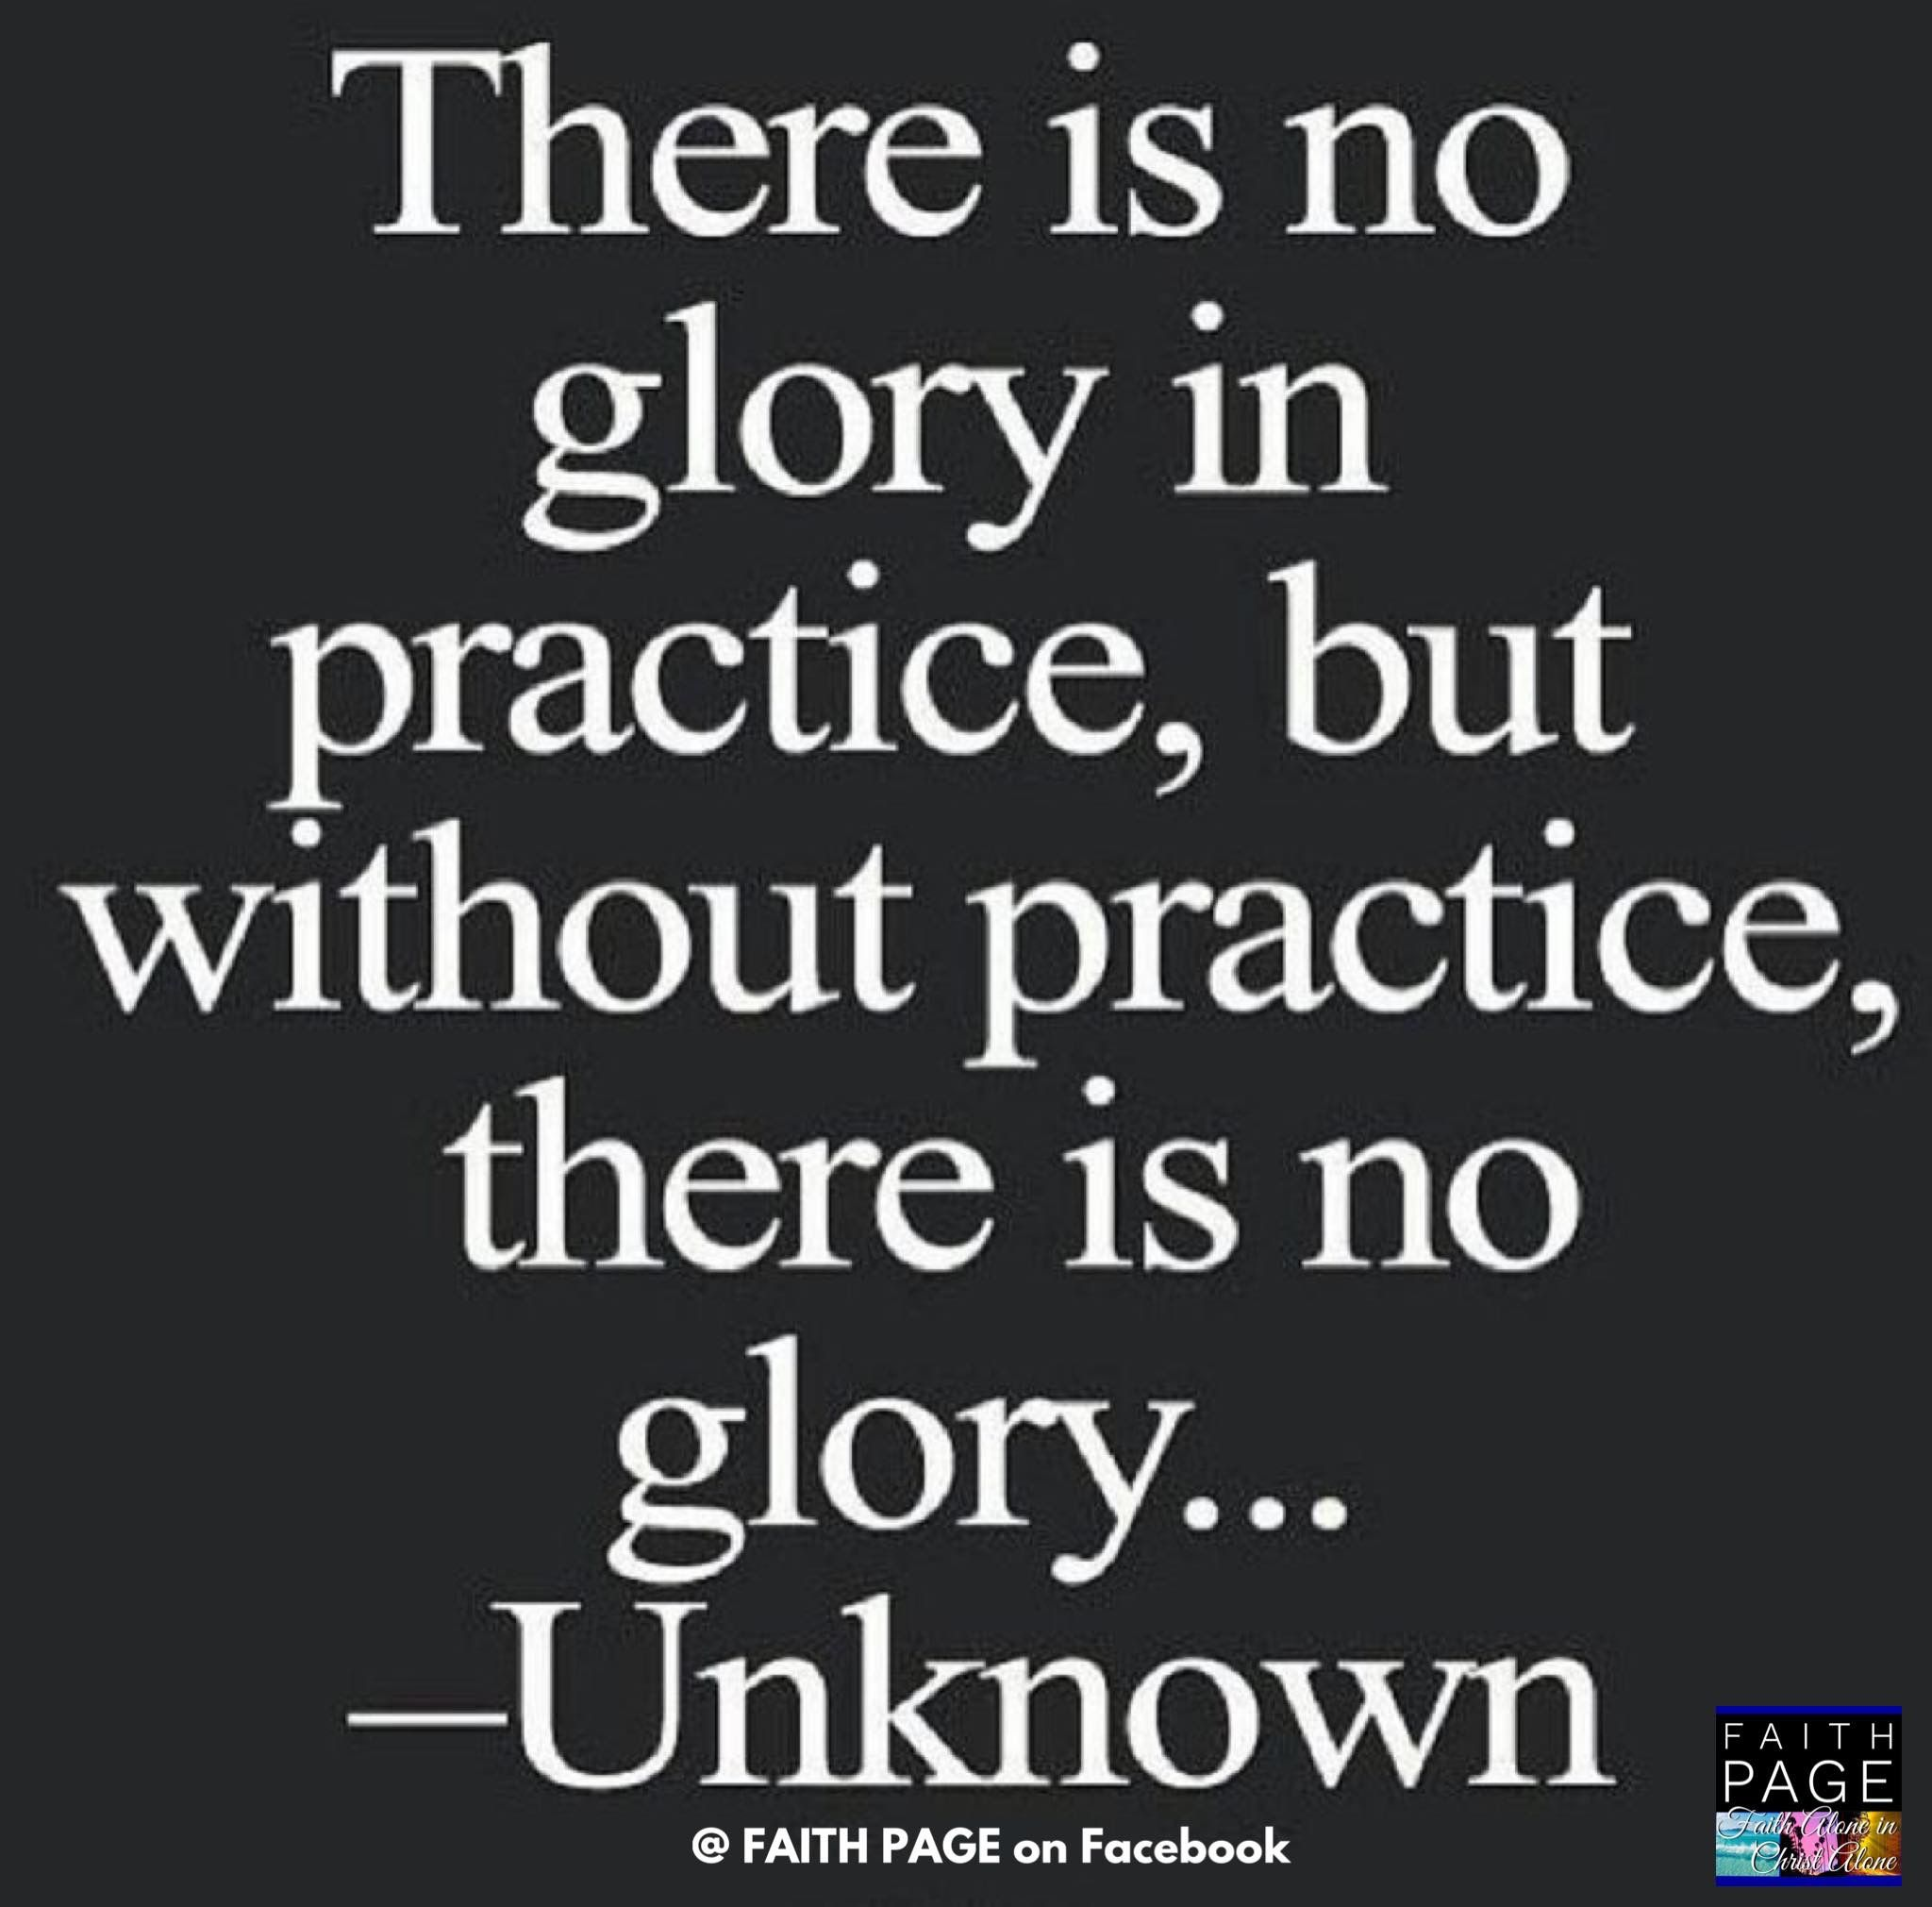 Quotes Christian Quotes In 2020 Inspirational Volleyball Quotes Athlete Quotes Inspirational Quotes